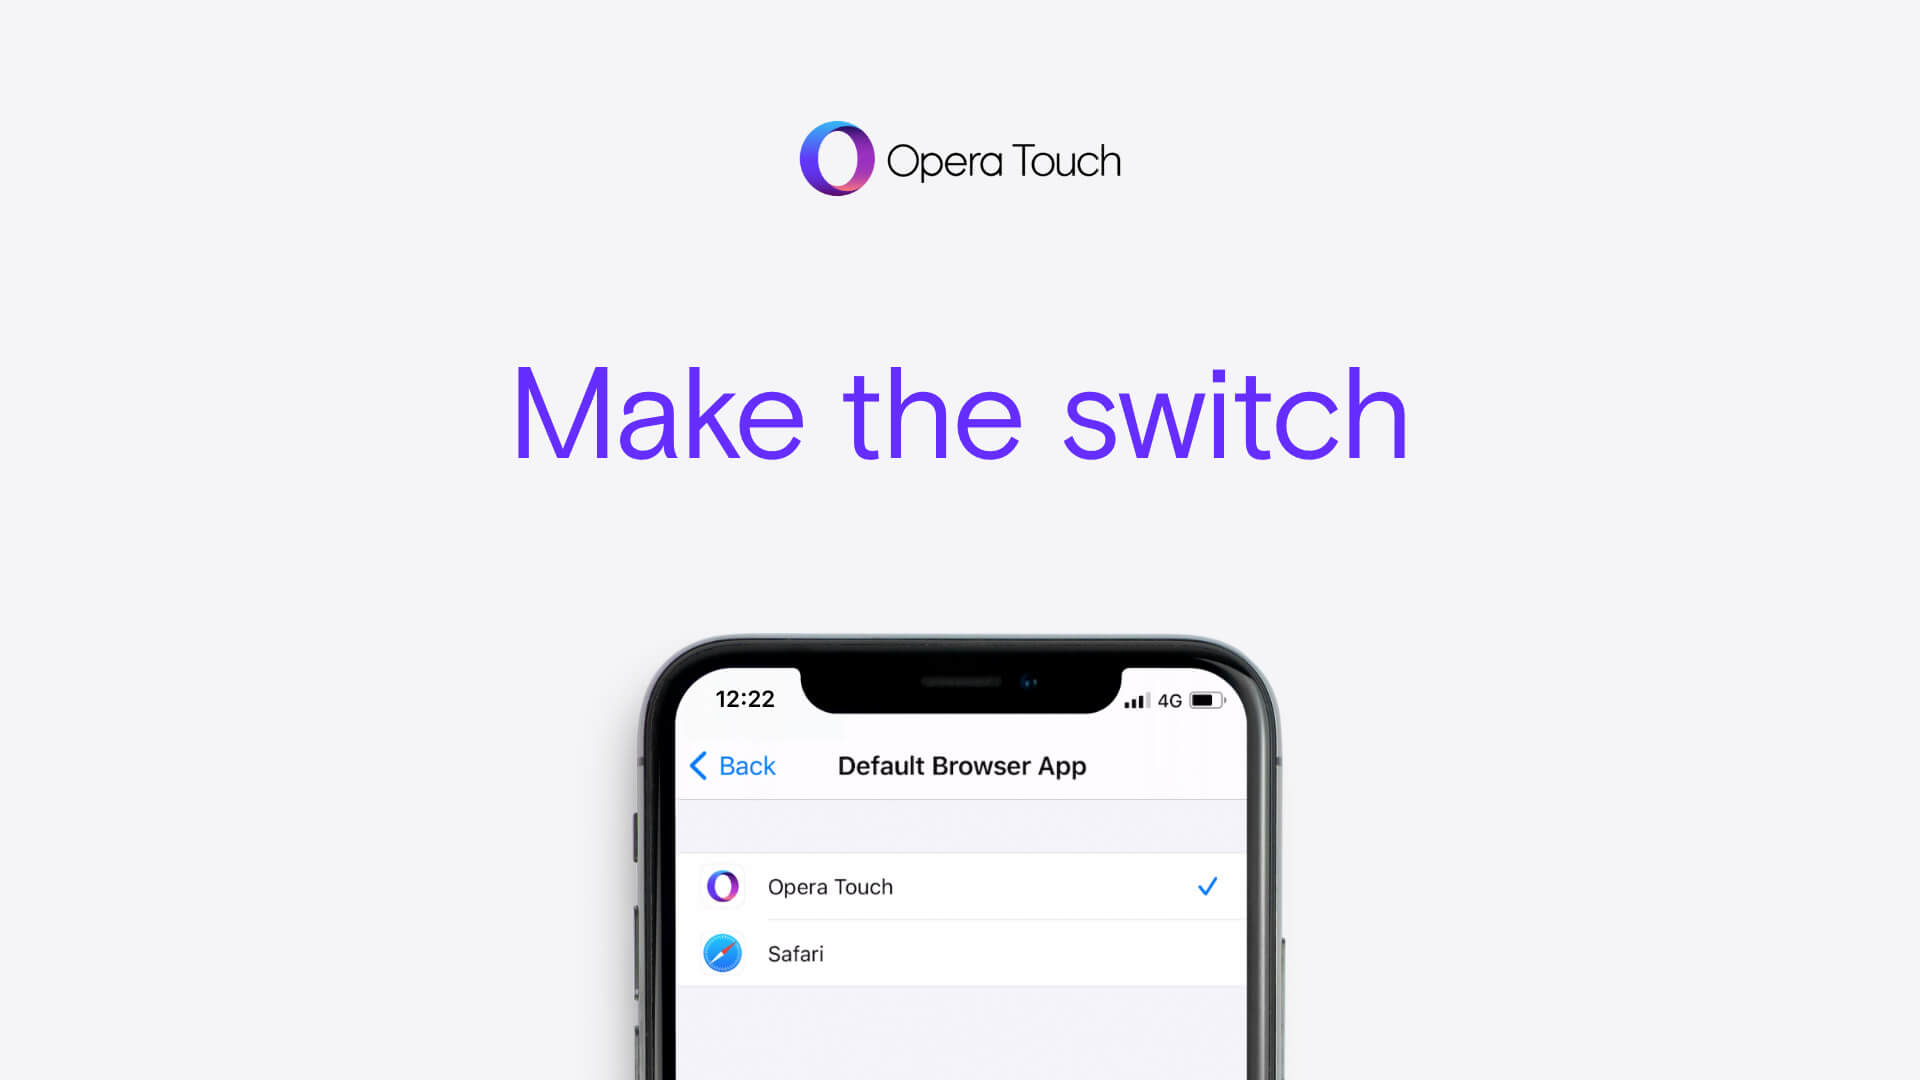 How to set Opera Touch as your default browser on iOS